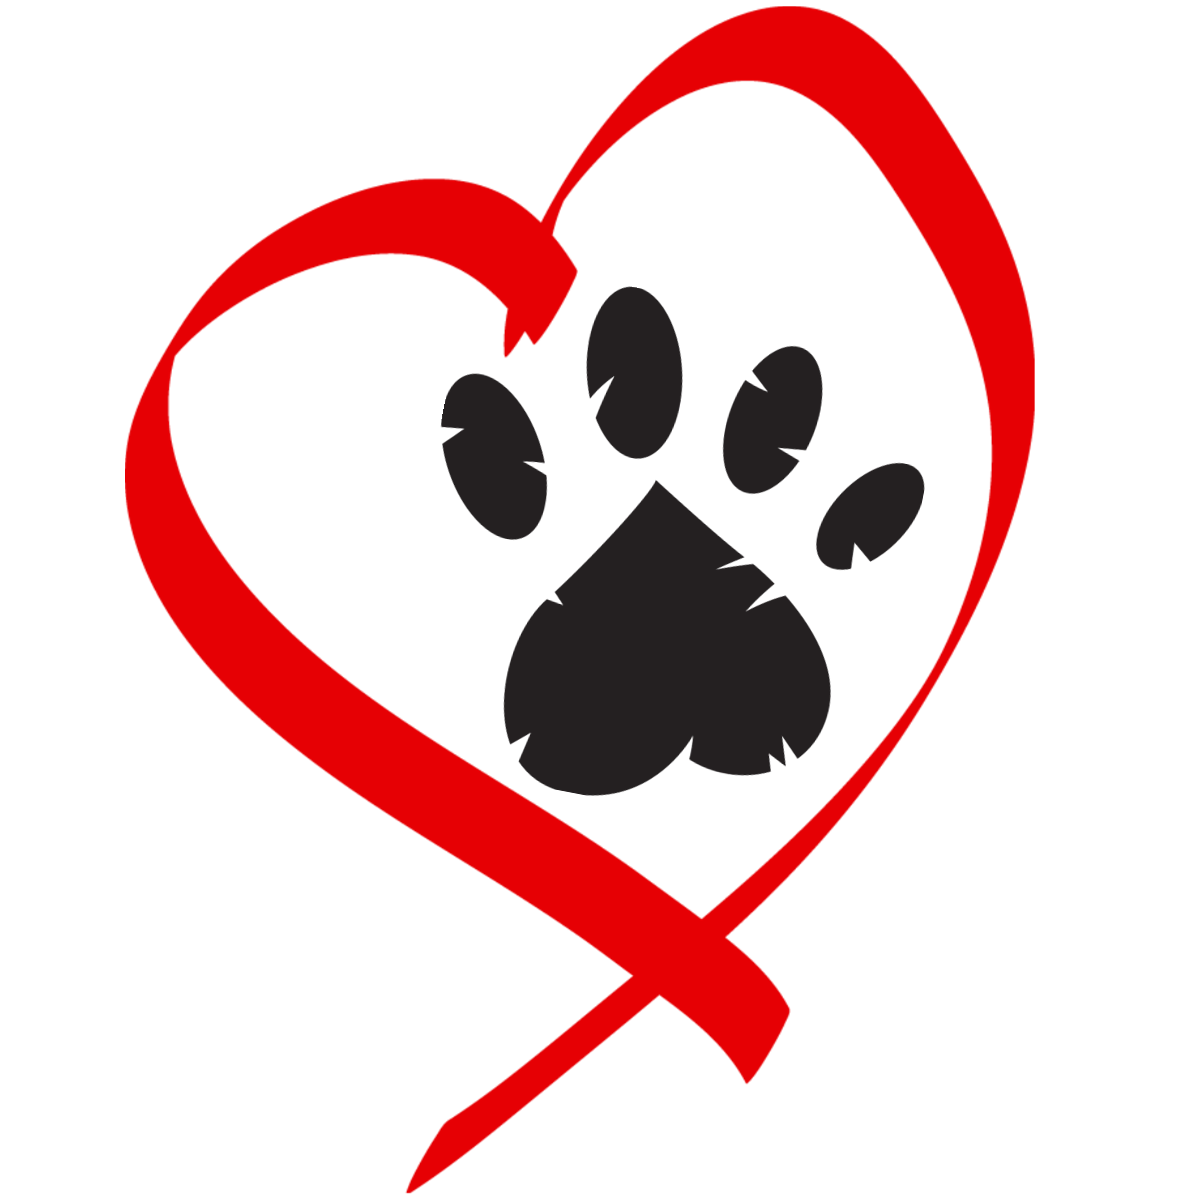 Heart with cross clipart jpg library stock Dog hearts clipart - ClipartFest jpg library stock